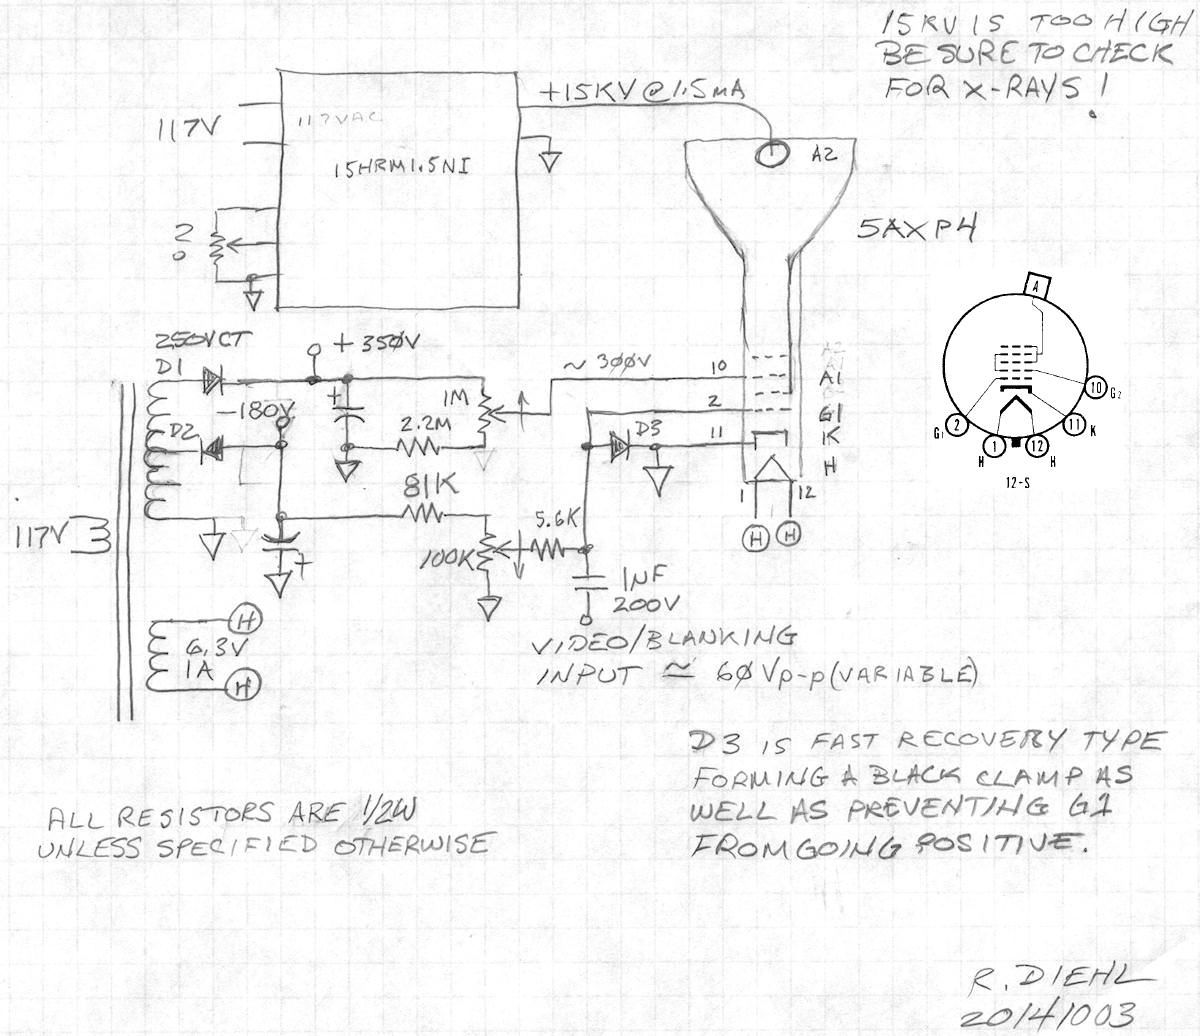 Avians Blog Archive For The Analog Category Circuit Diagram Electron Flow Its Purpose Might Be To Put A High Negative Bias On G1 Stop Beam When Device Is Turned Off And A1 Goes Low